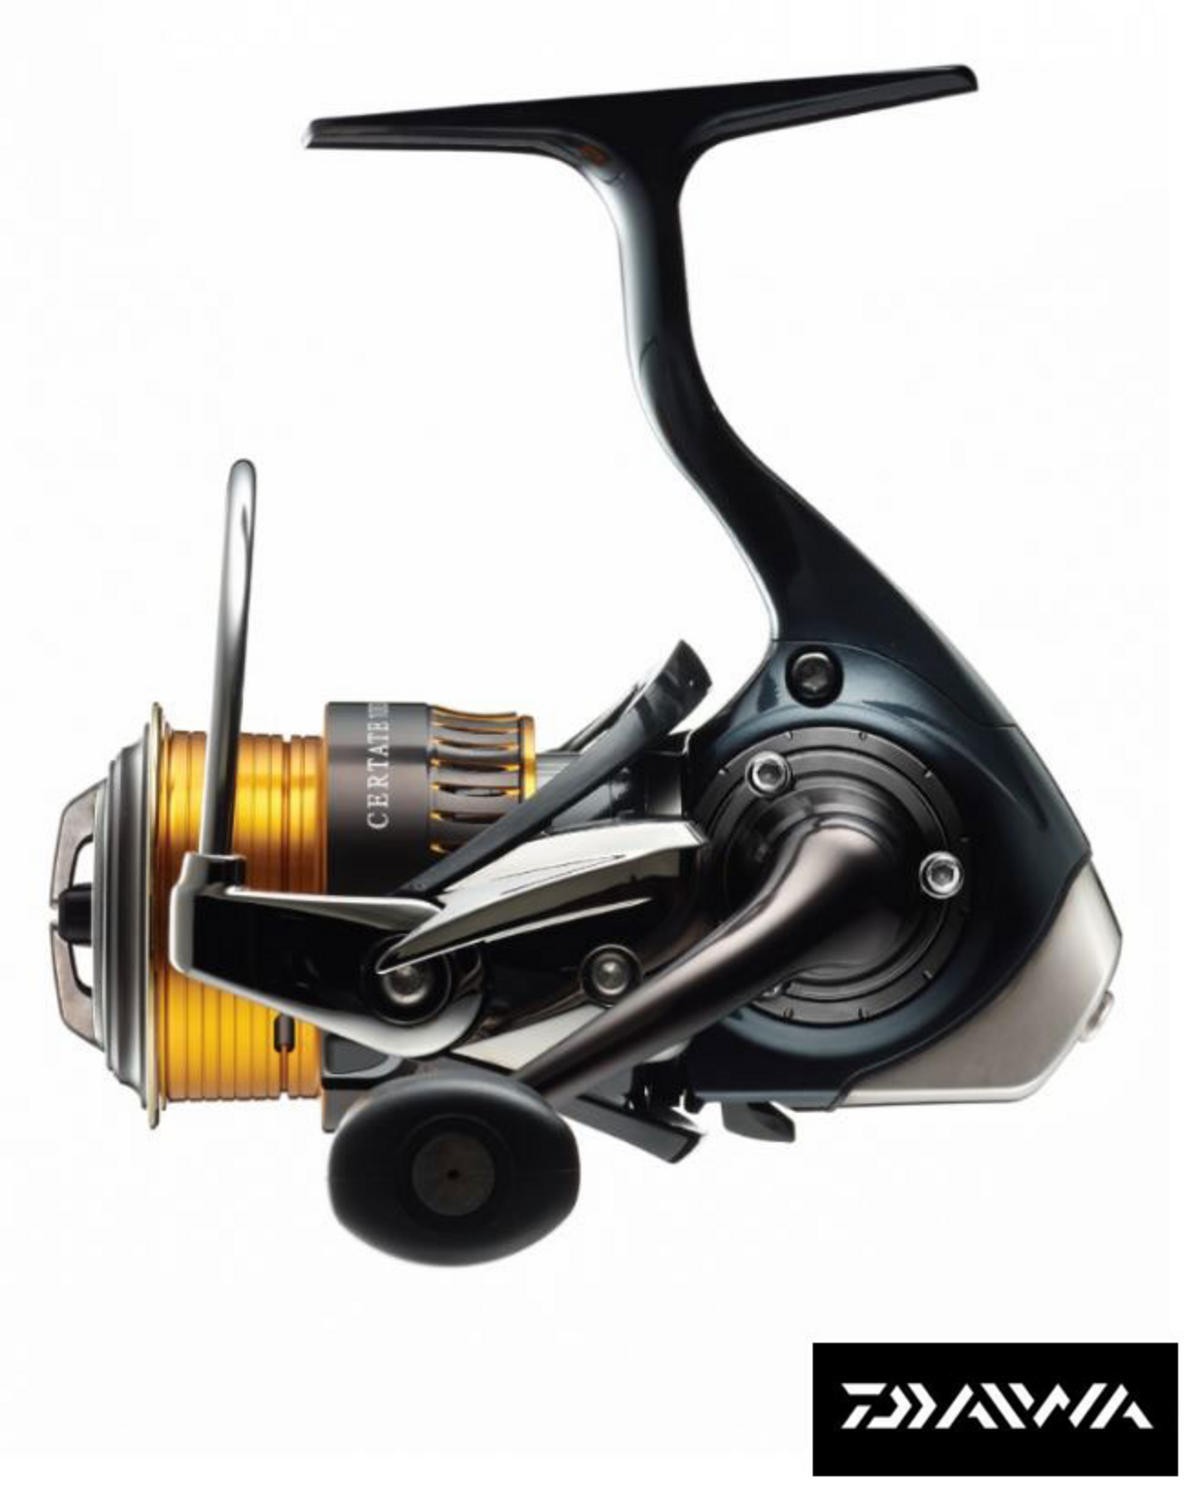 DAIWA 16 CERTATE SPINNING REEL SPECIAL CLEARANCE OFFER